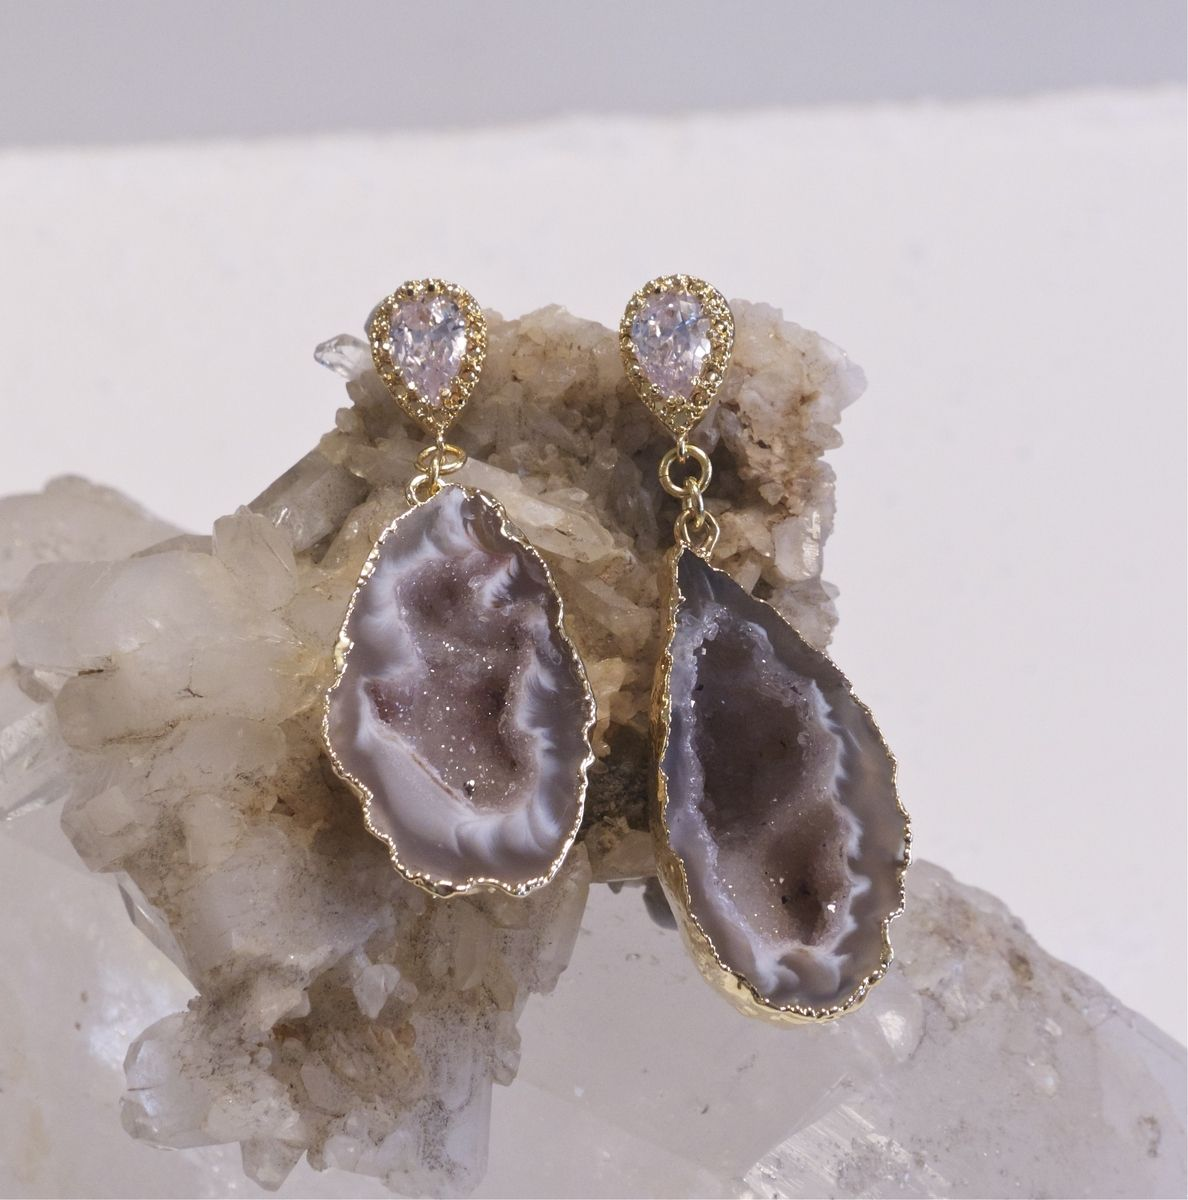 Handmade Raw Mineral Jewelry Geode Earrings By Pauletta